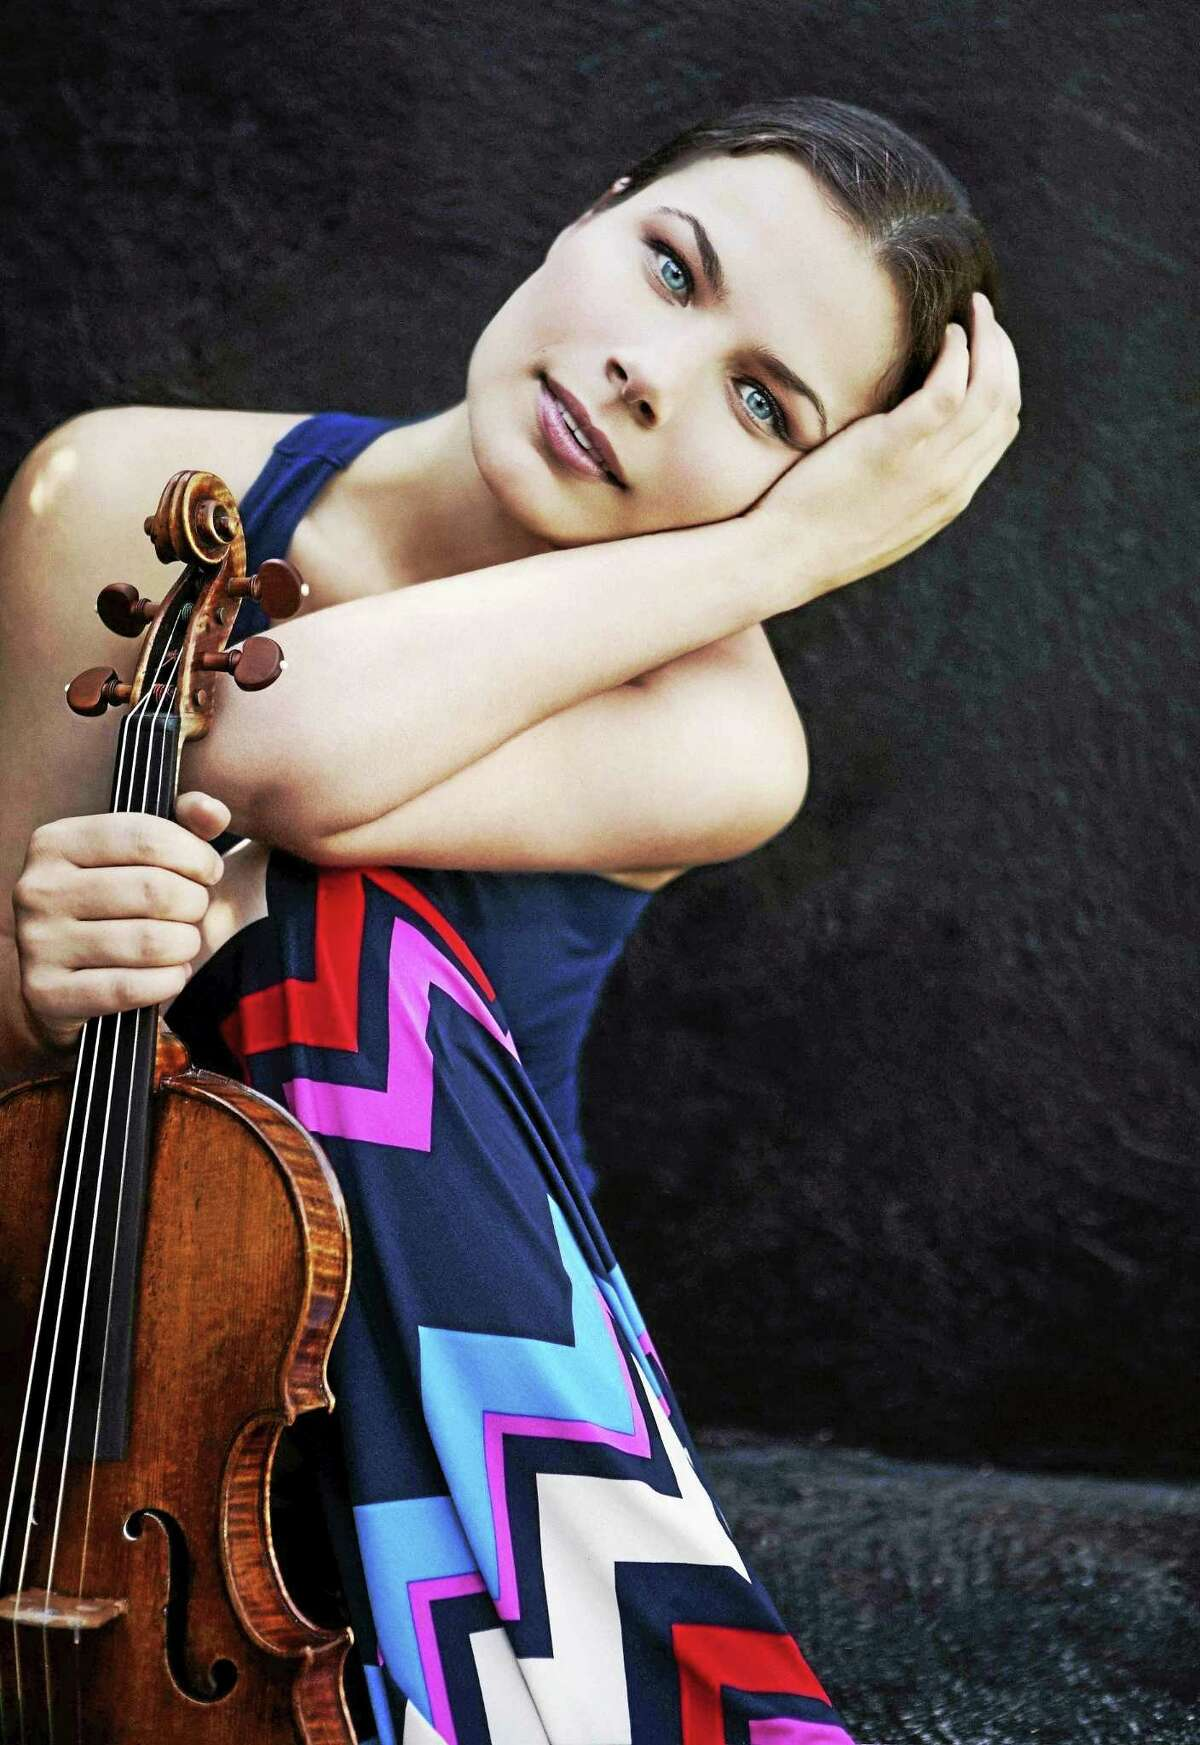 Bella Histrova will be the guest violinist for the concerts in New Haven, Hamden and Shelton.